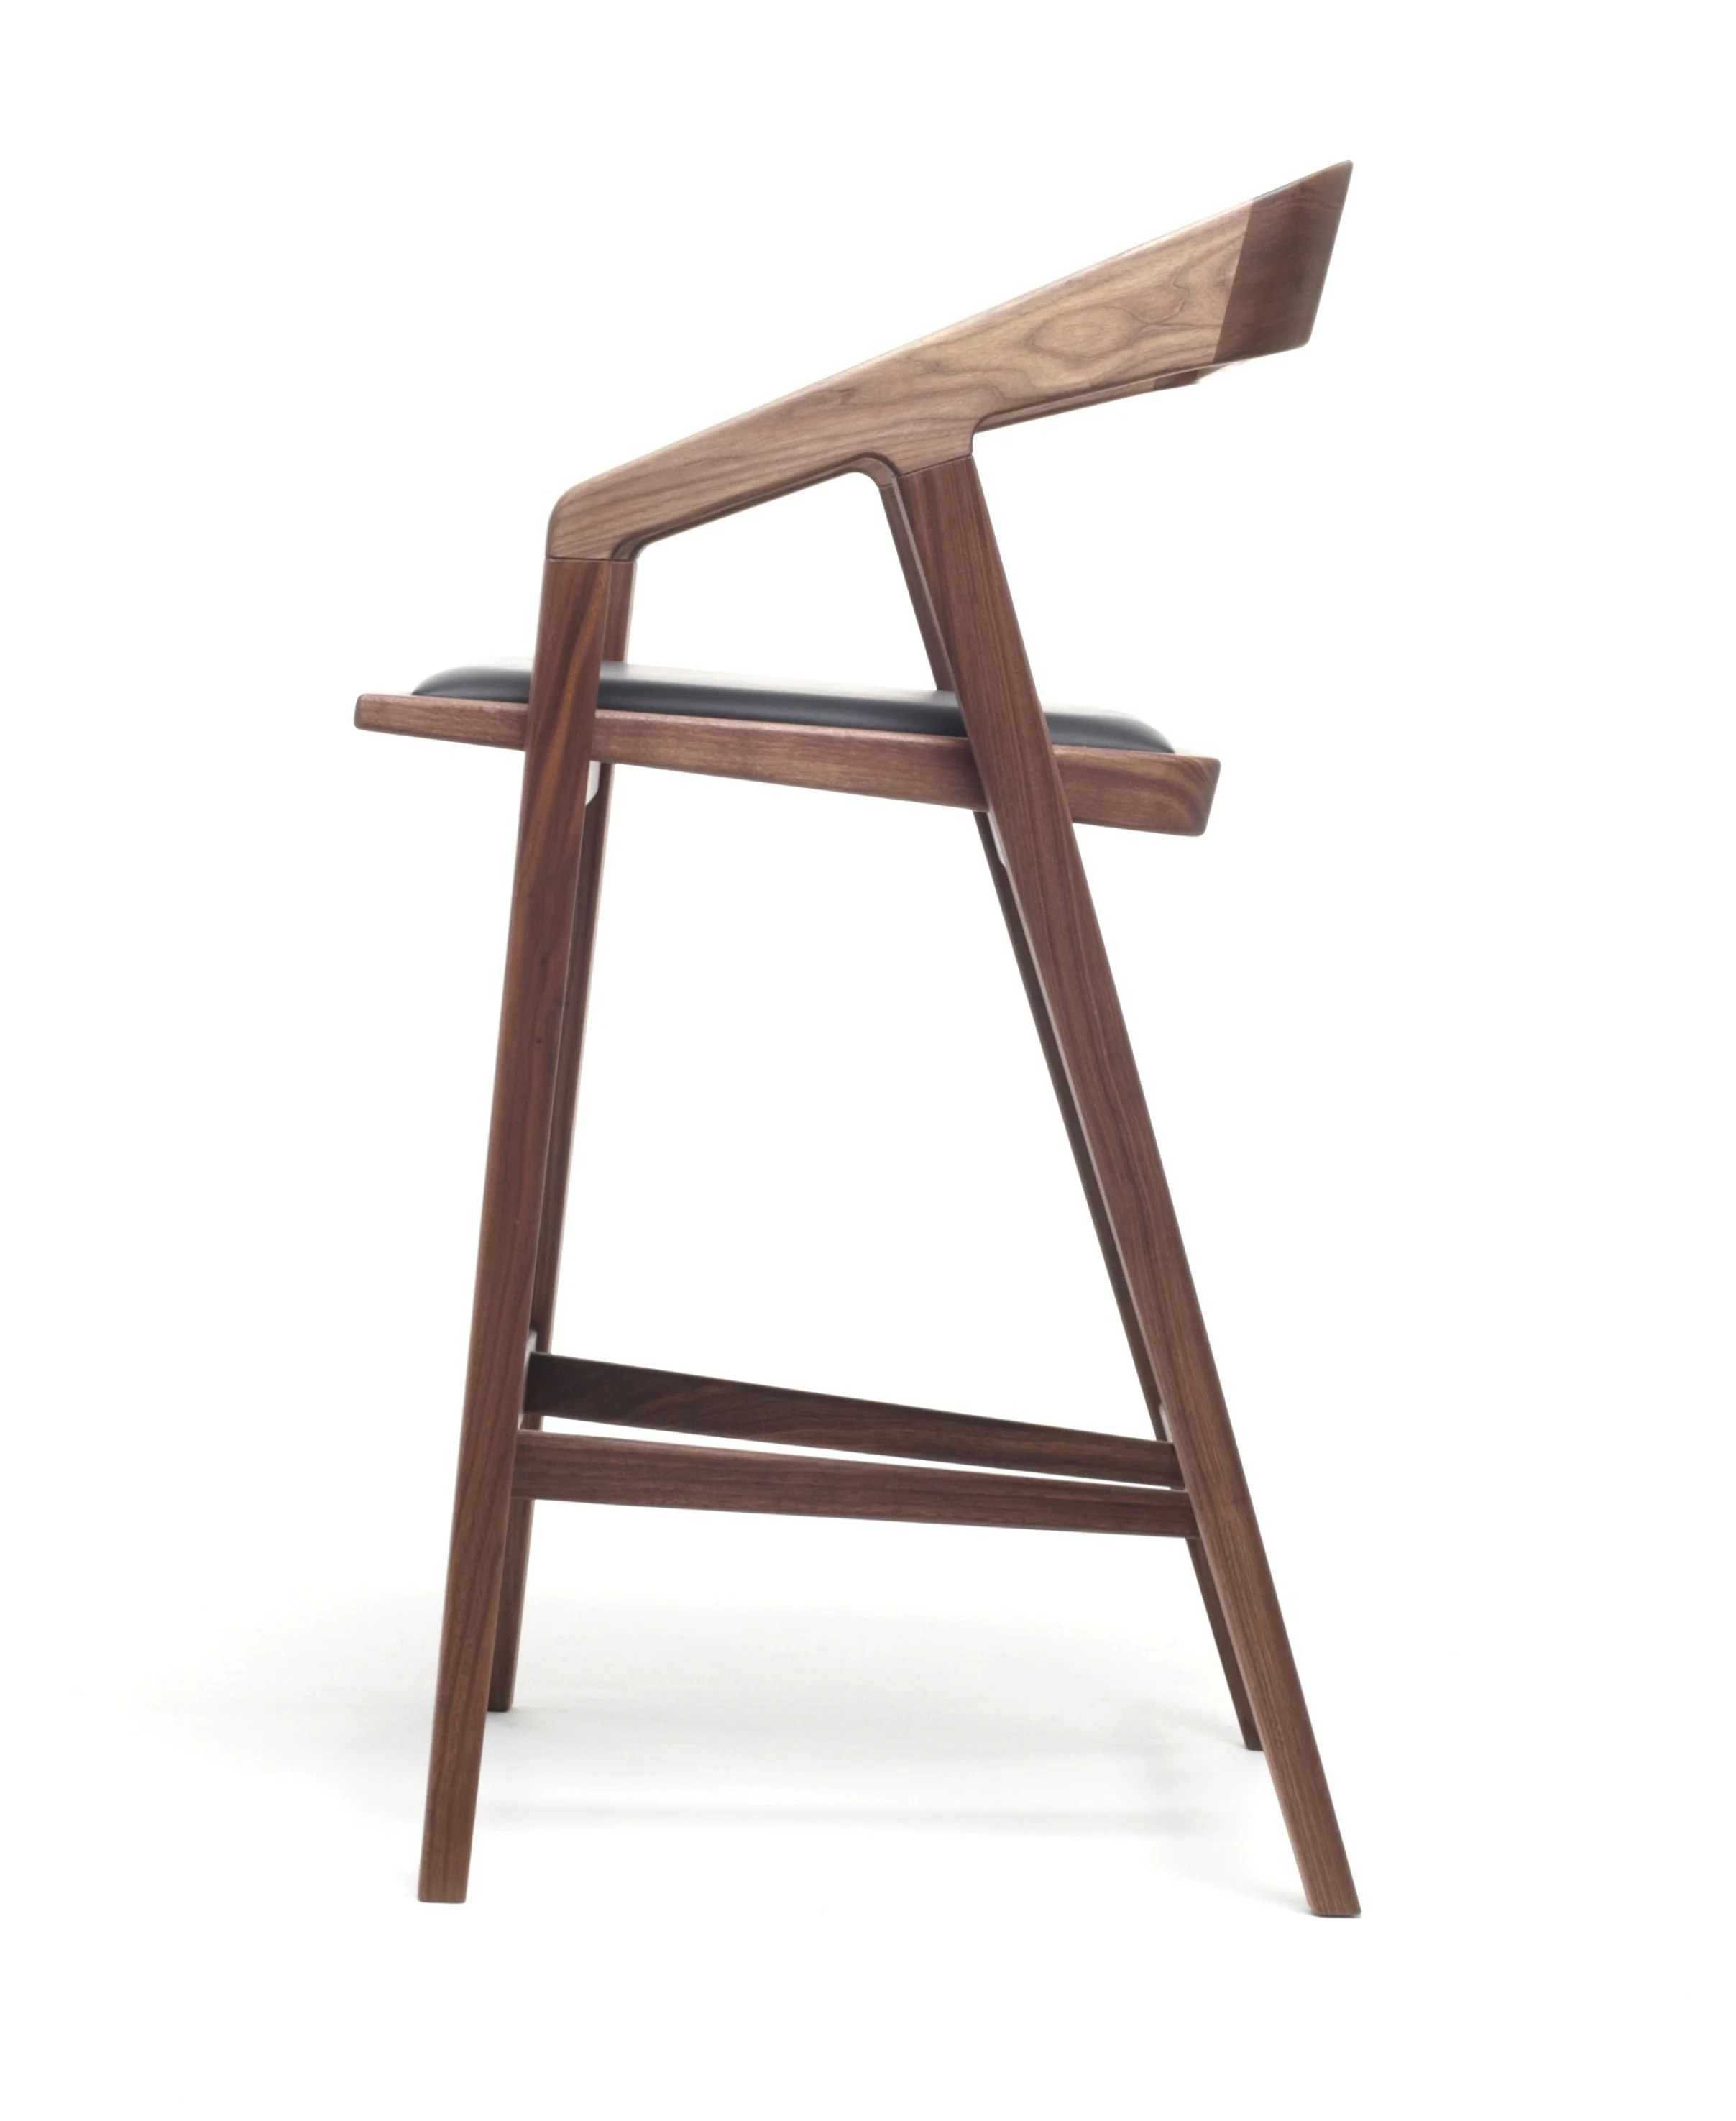 Tabourets De Bar En Bois Katakana Tabouret By Dare Studio Design Sean Dare